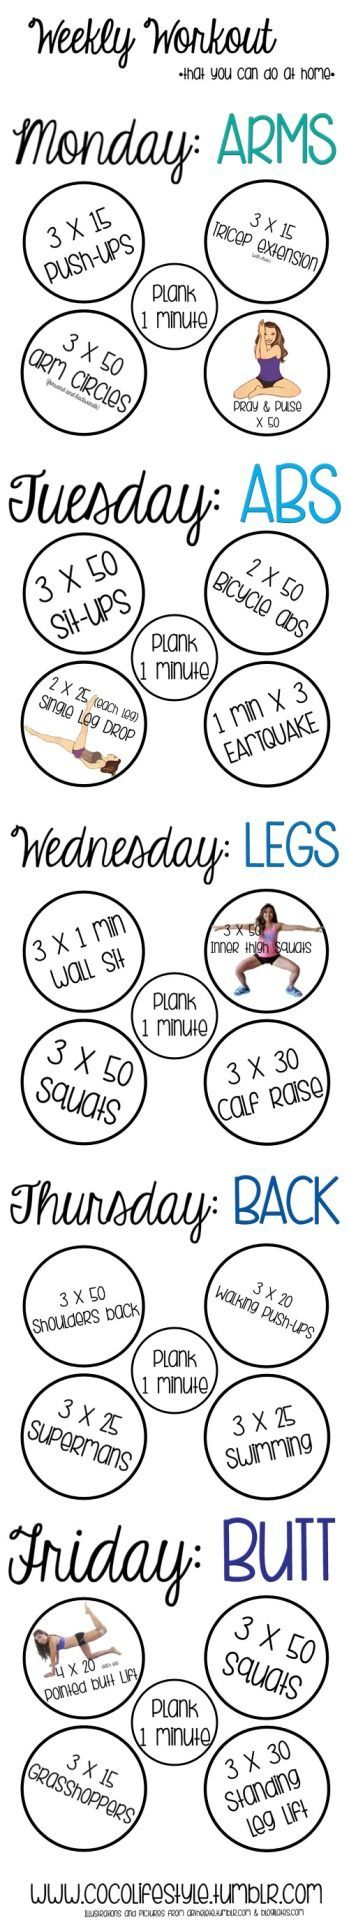 Best  Weekly Workout Plans Ideas On   Weekly Workout